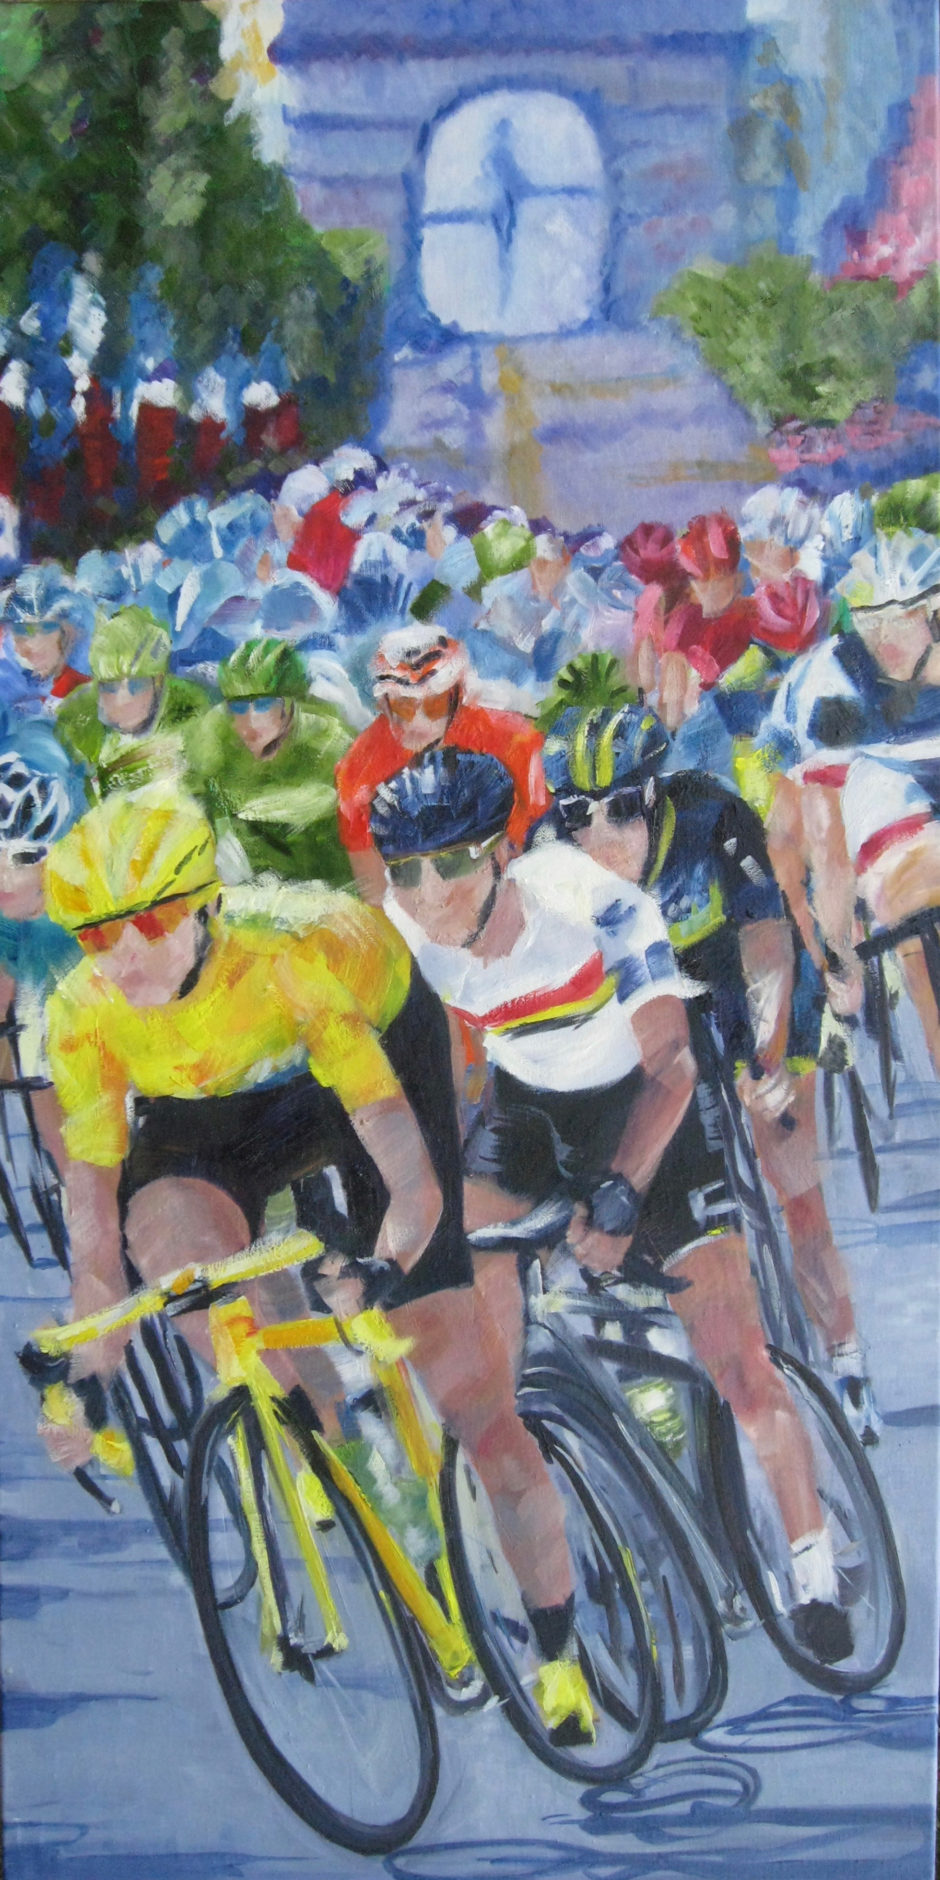 cyclists in tour de france in front of arc de triomplhe painted in oil on canvas